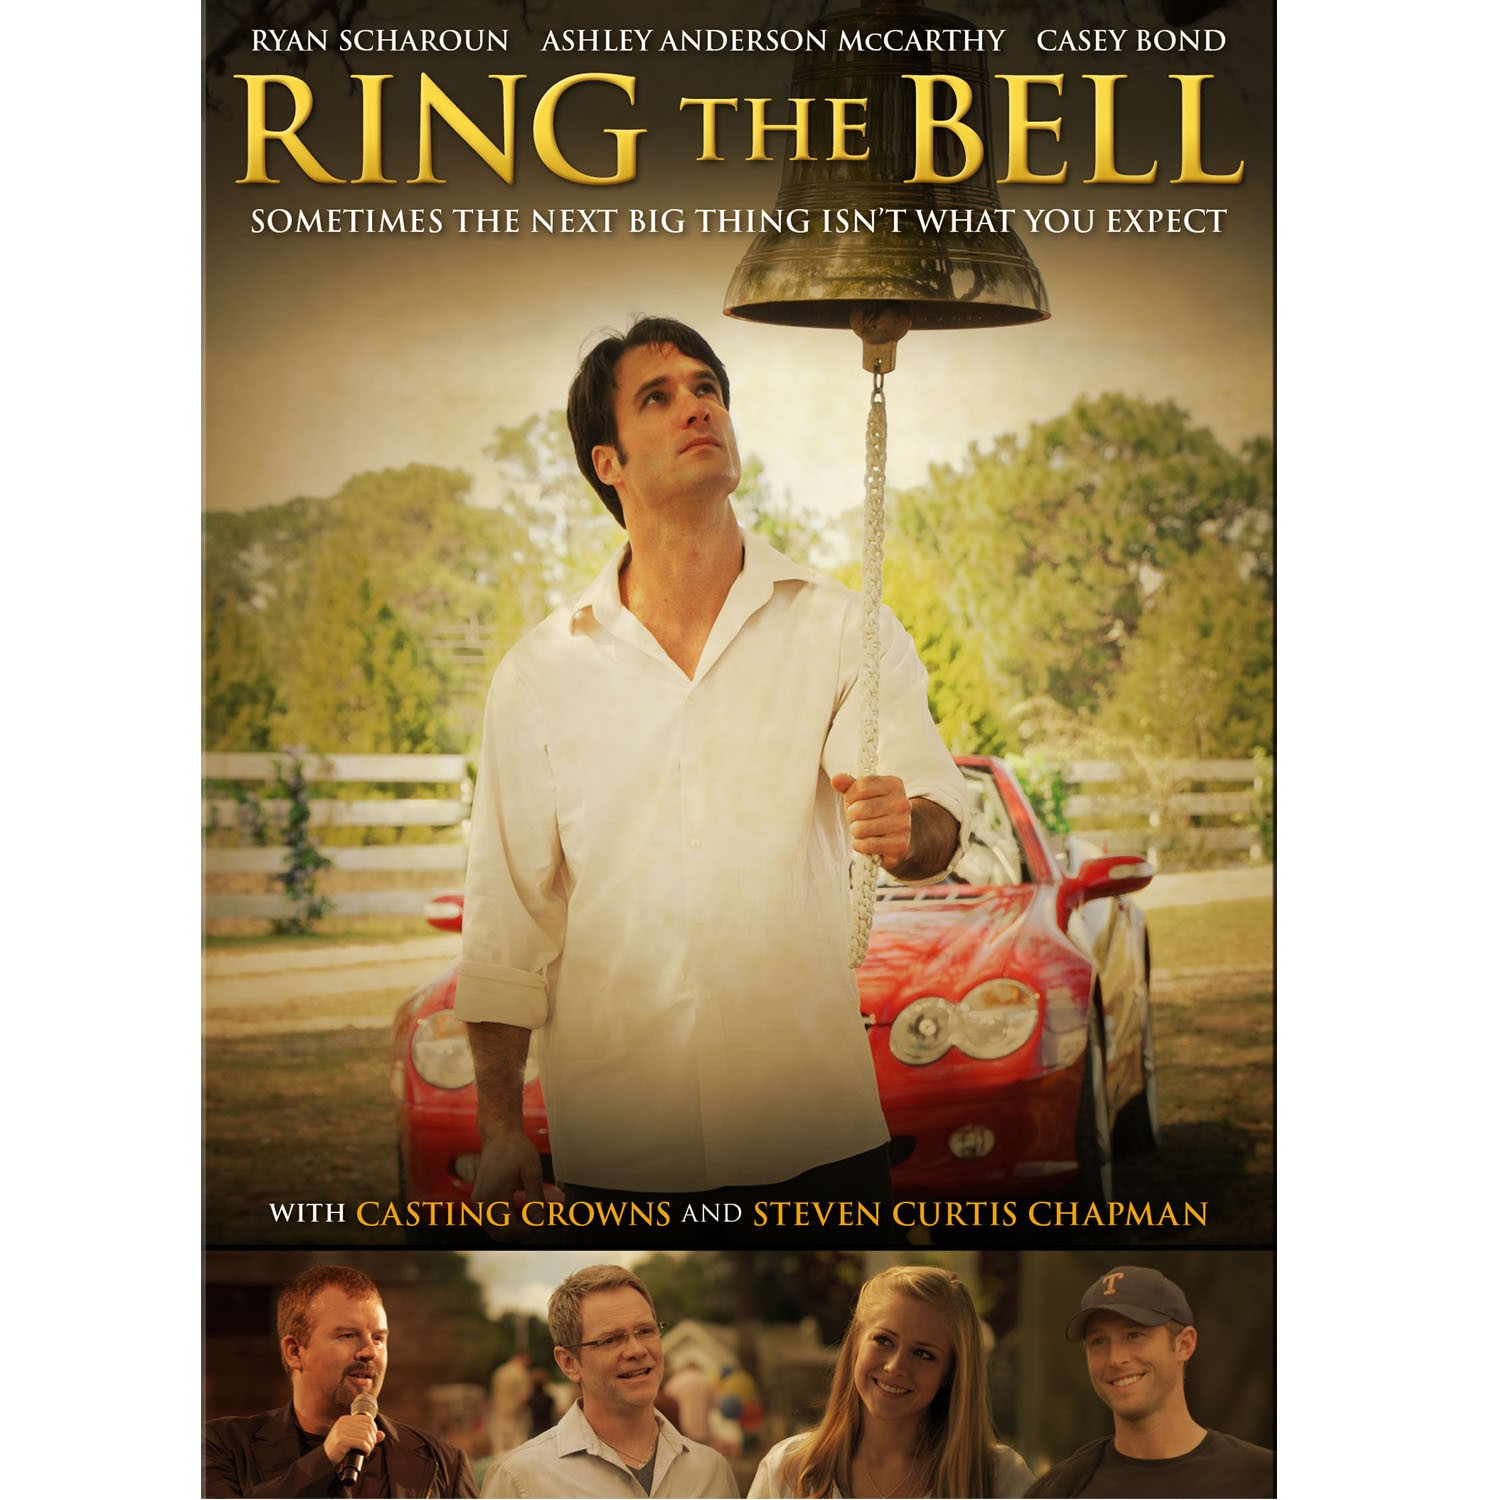 The Ringing Bell Movie Poster